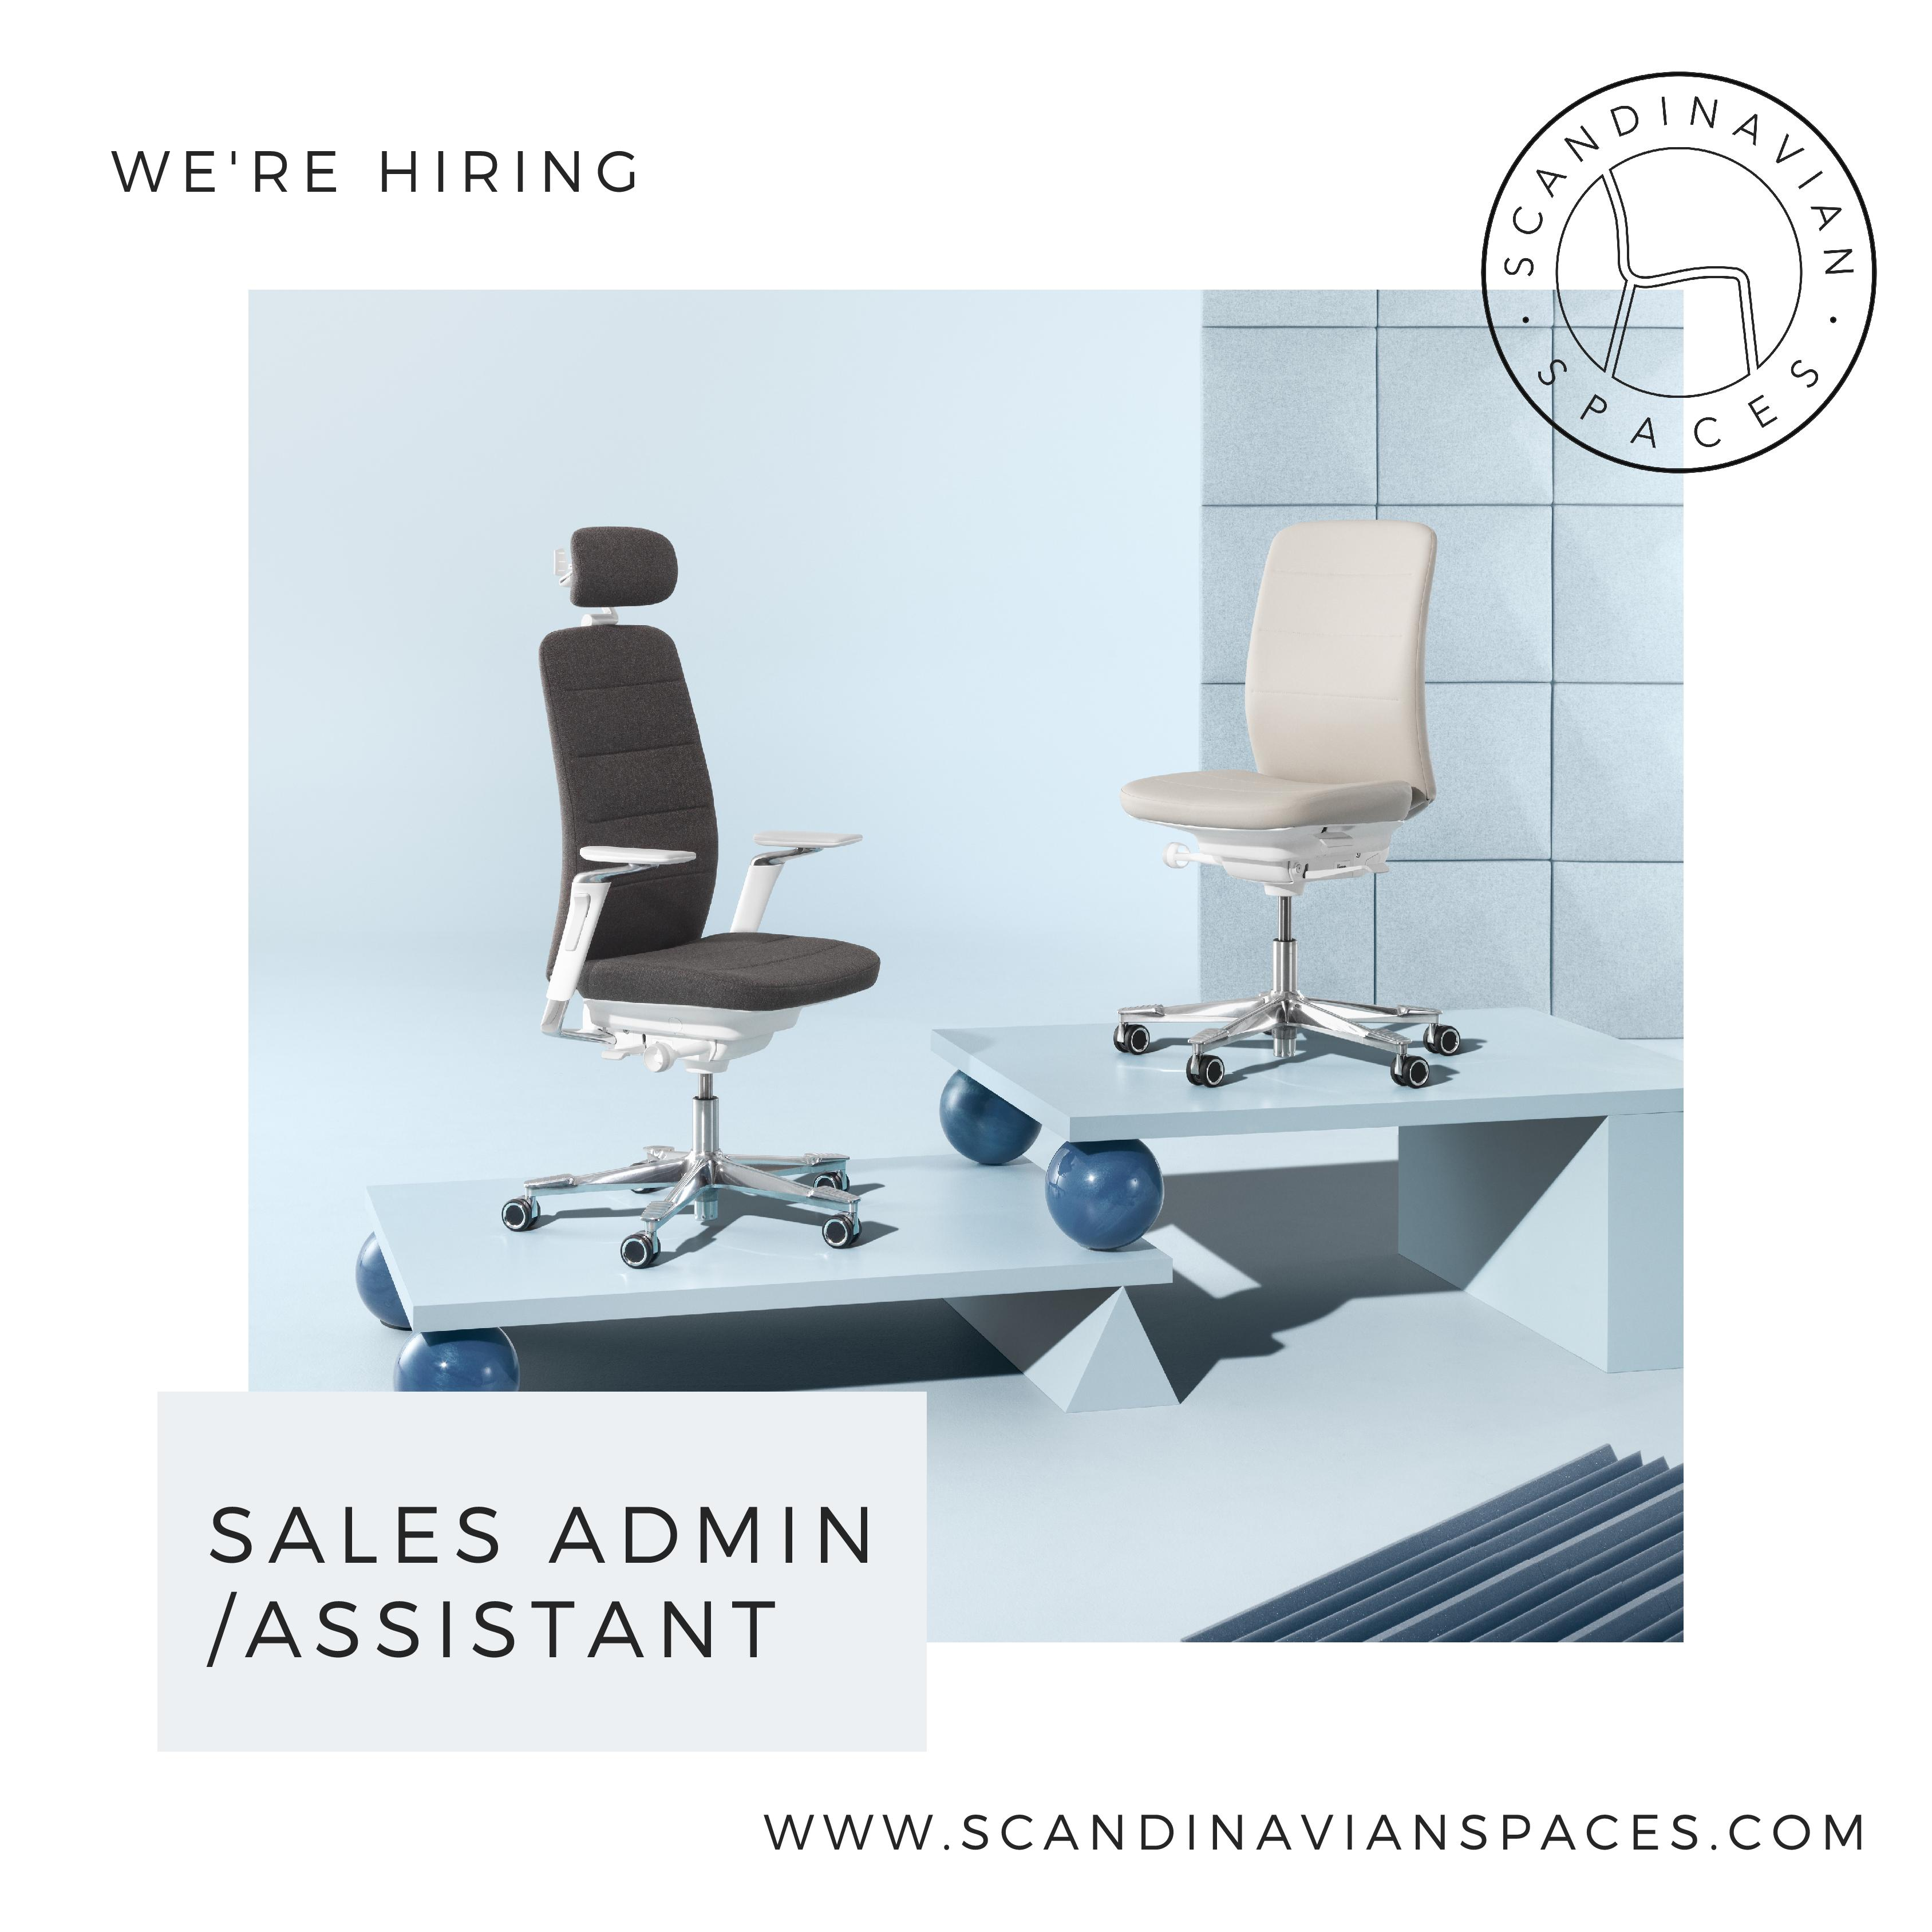 sales admin assistant to scandinavian spaces in austin sacc tx